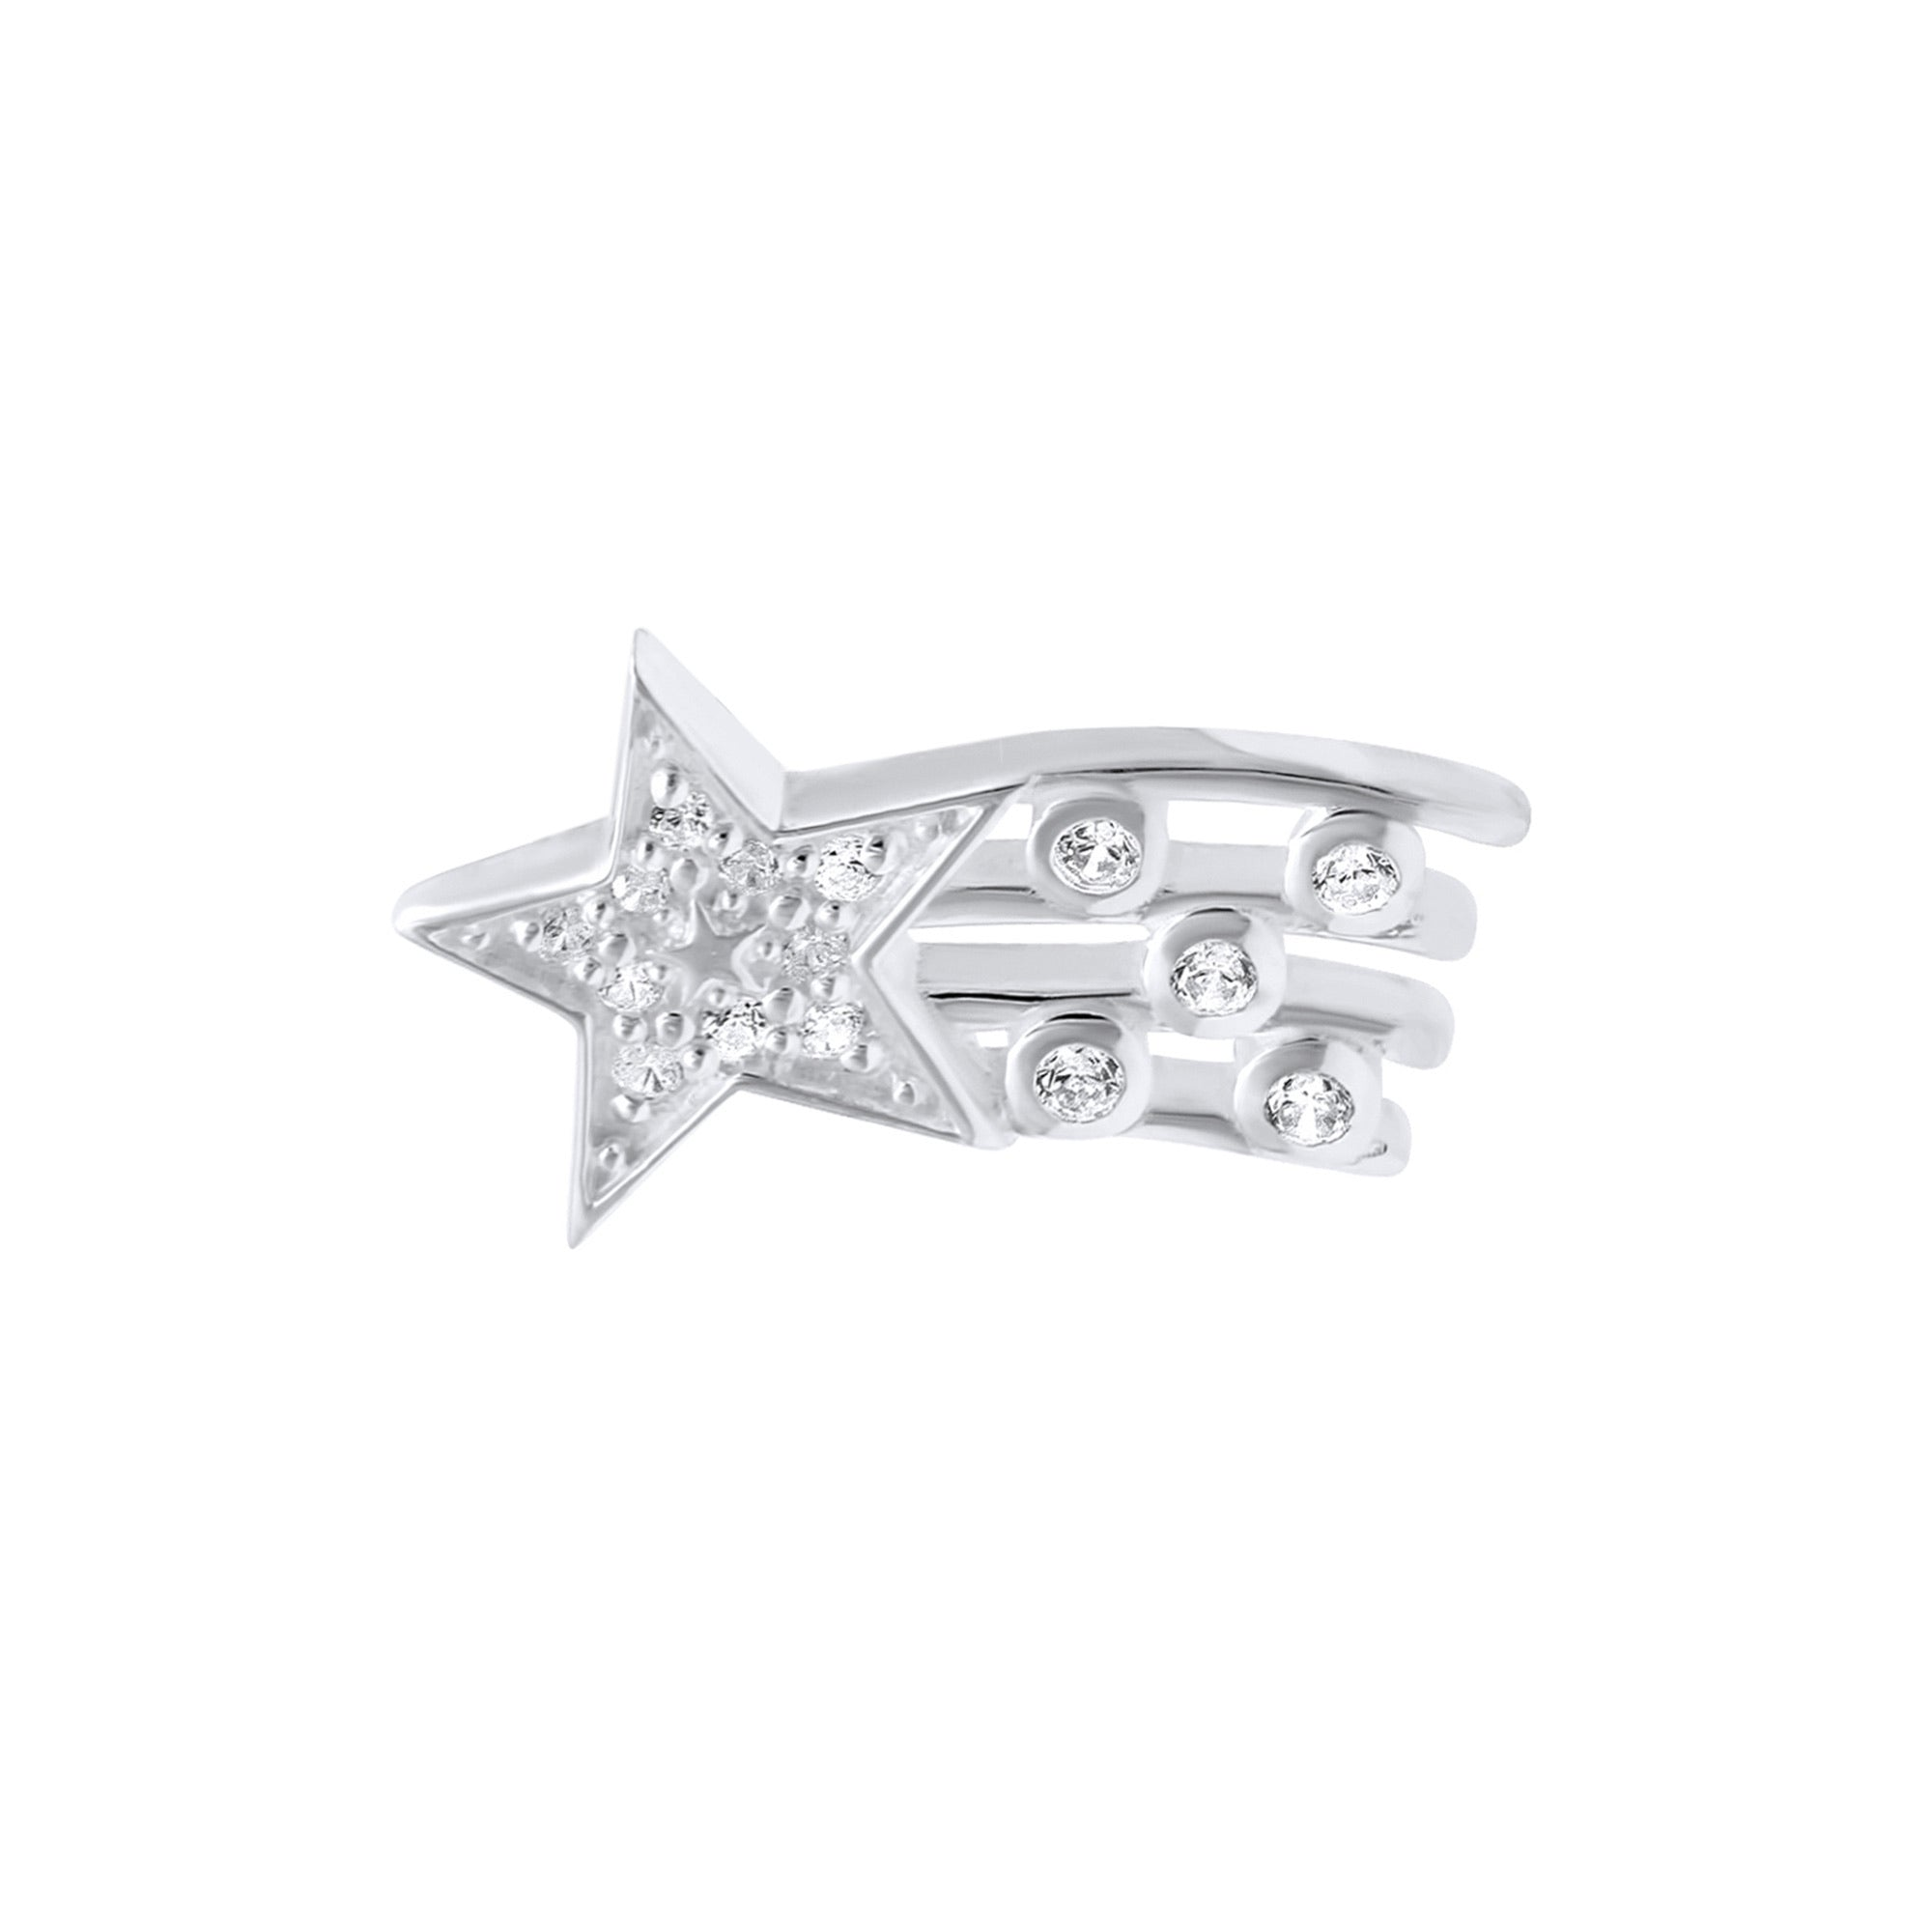 Shooting star lapel pin